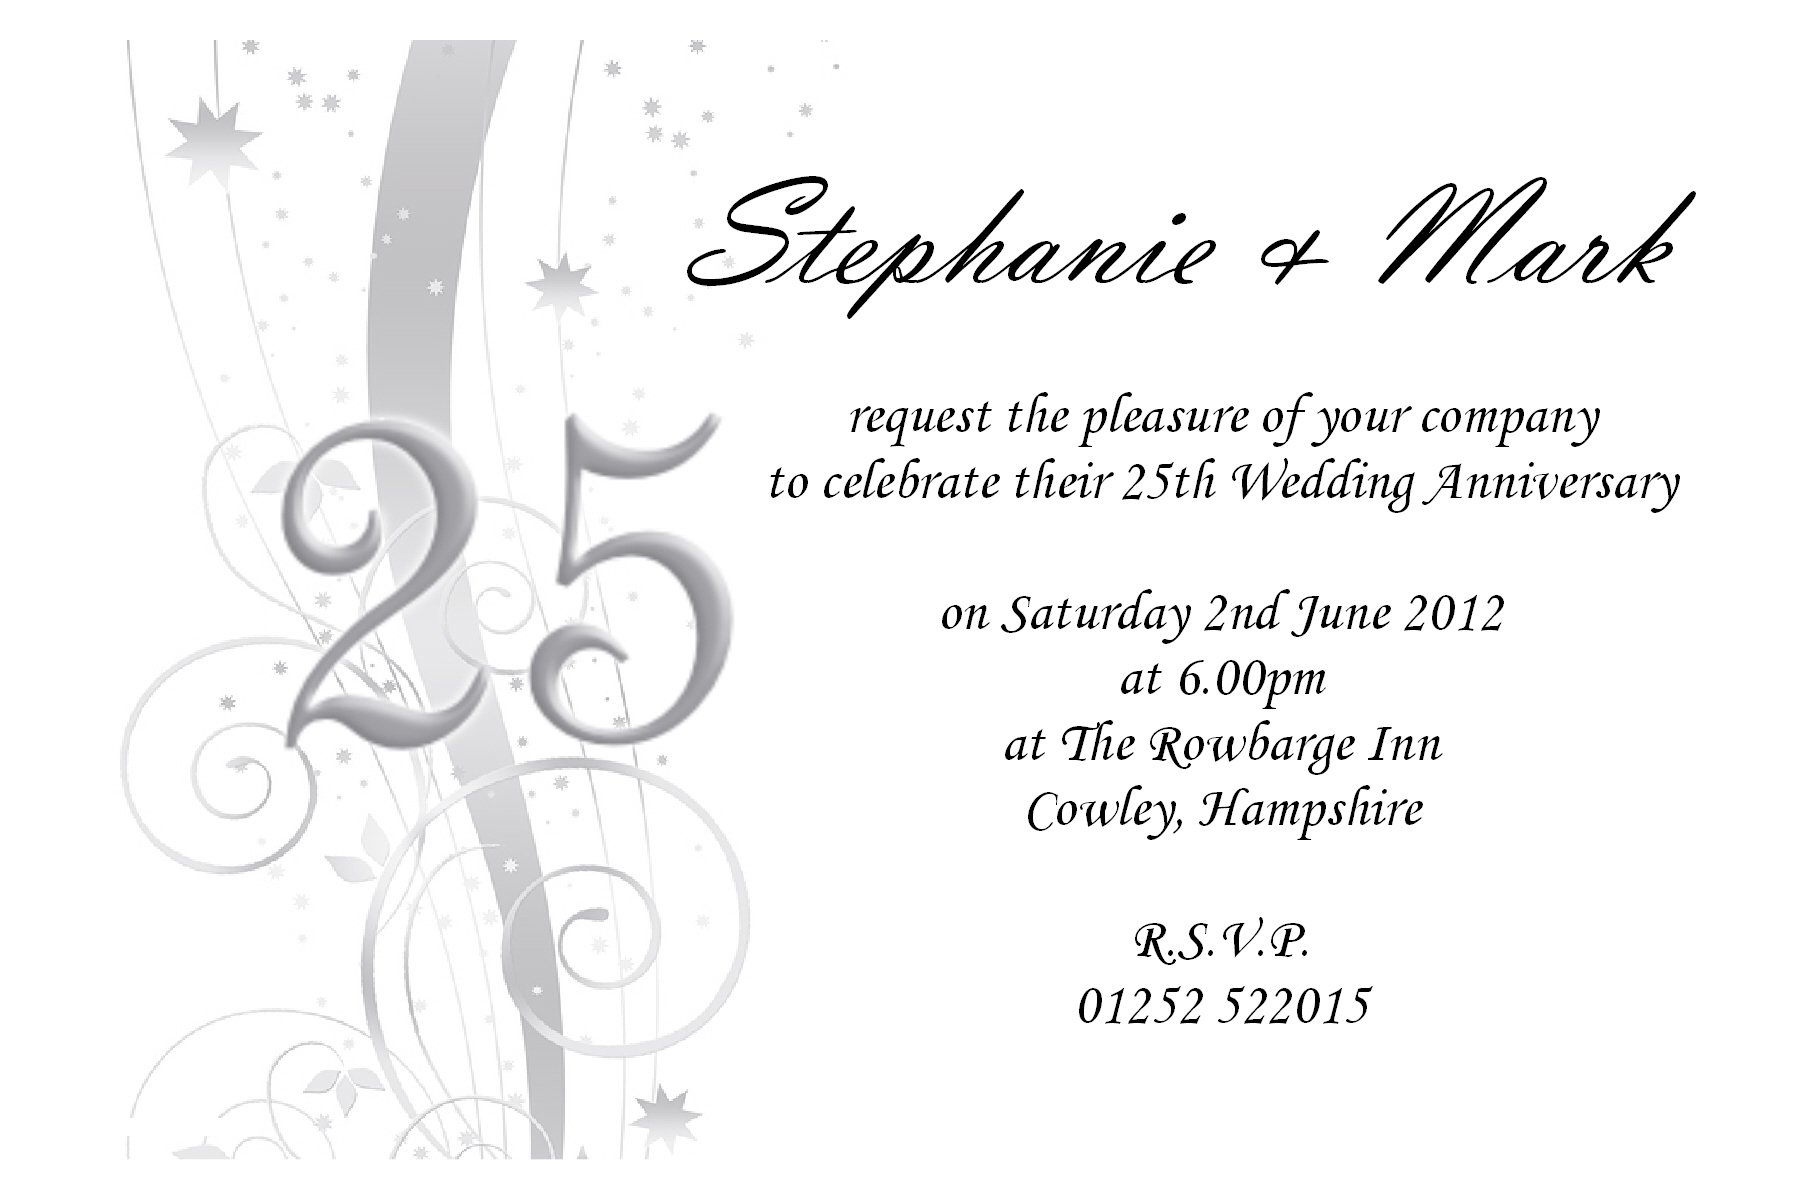 Party Invitations Templates Free – 50th Wedding Anniversary Invitation Templates Free